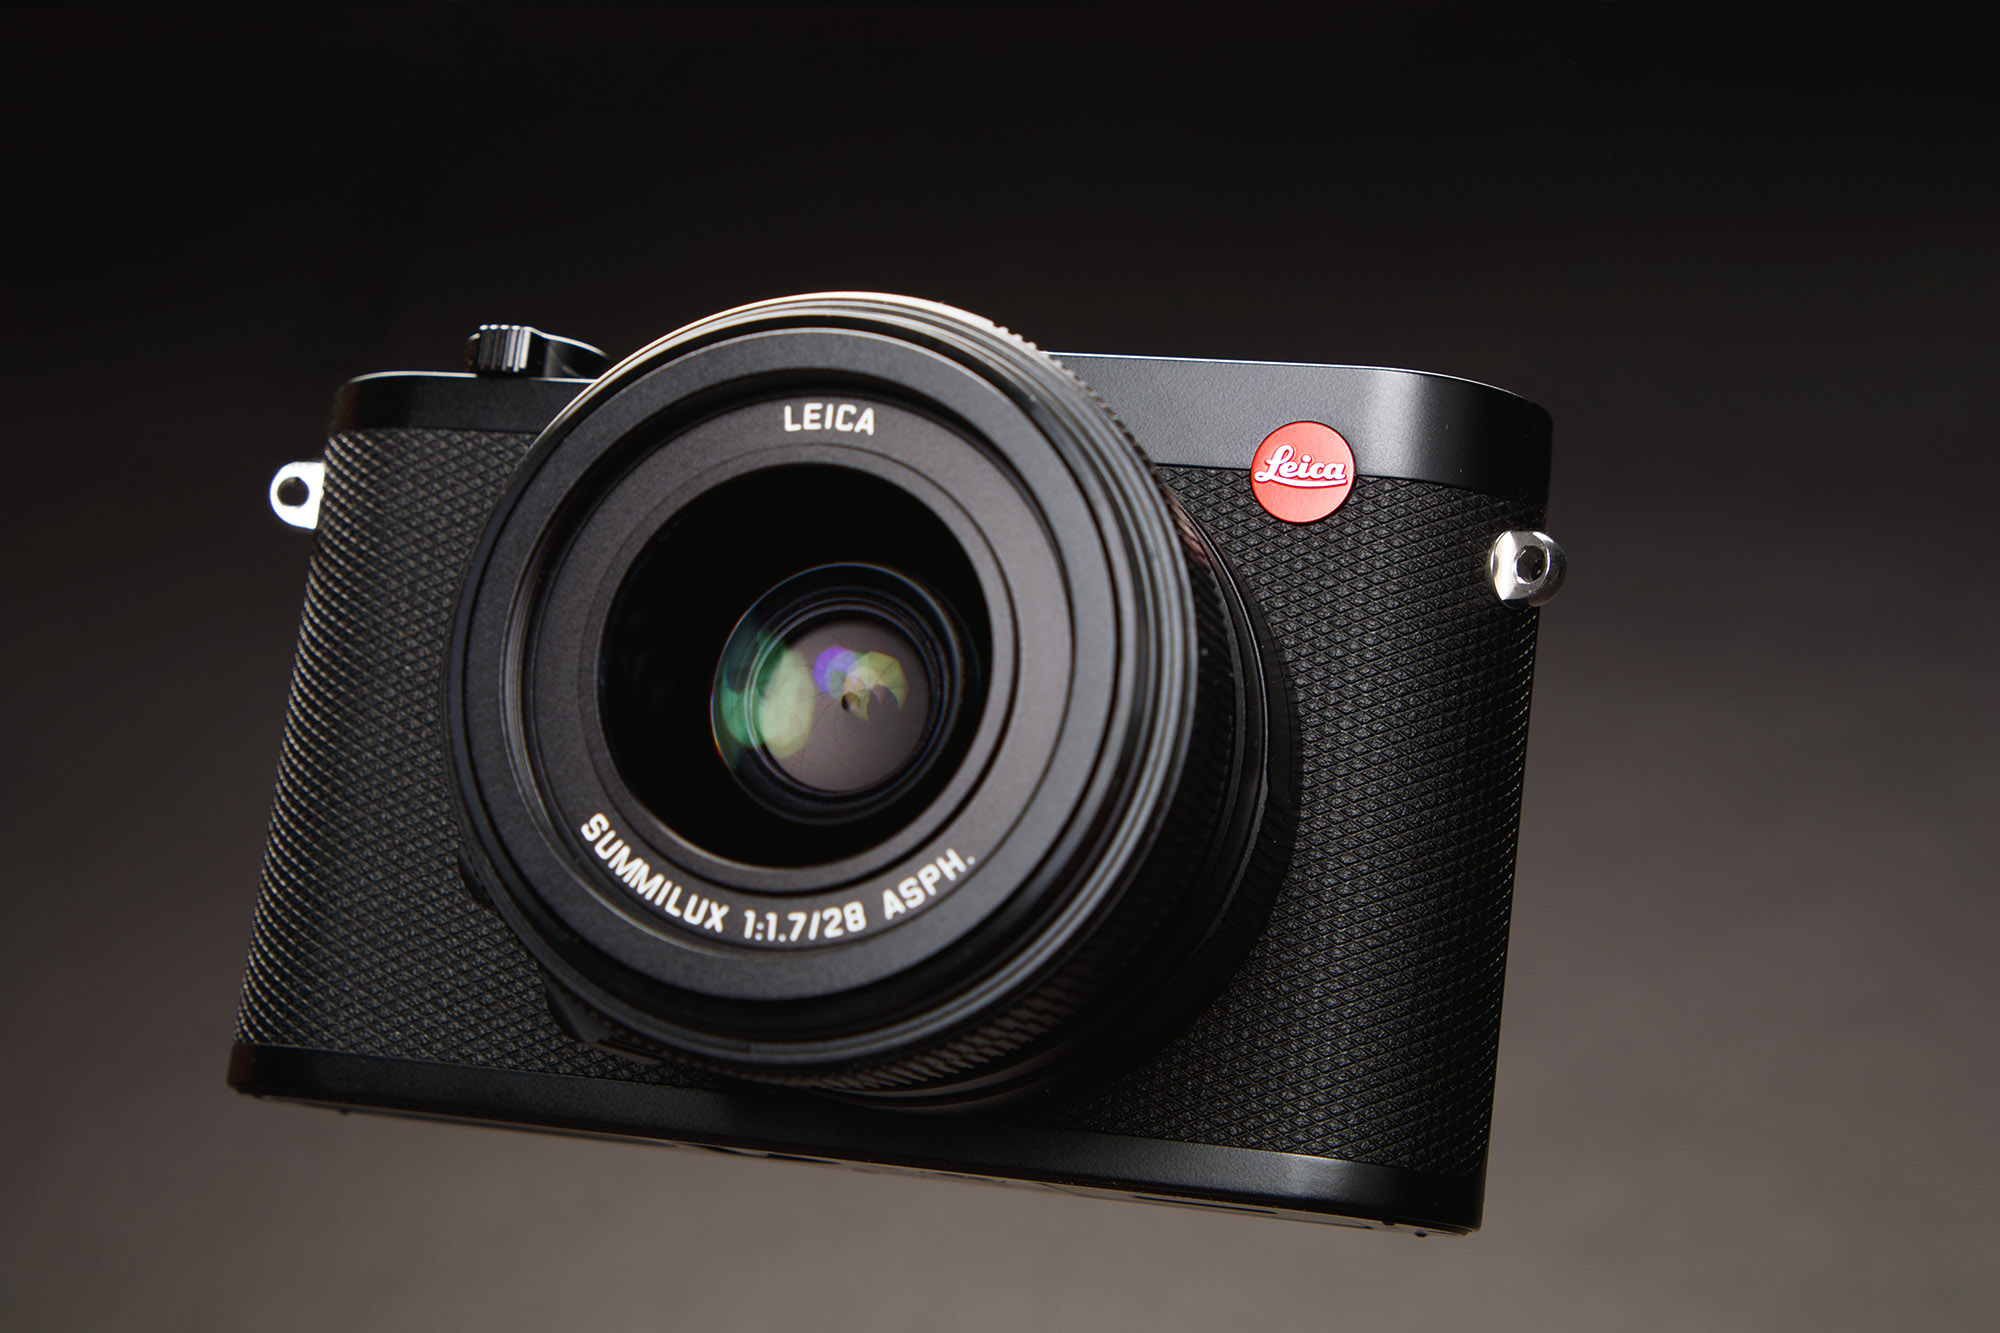 Leica Q2 owners are experiencing issues with unreadable Raw